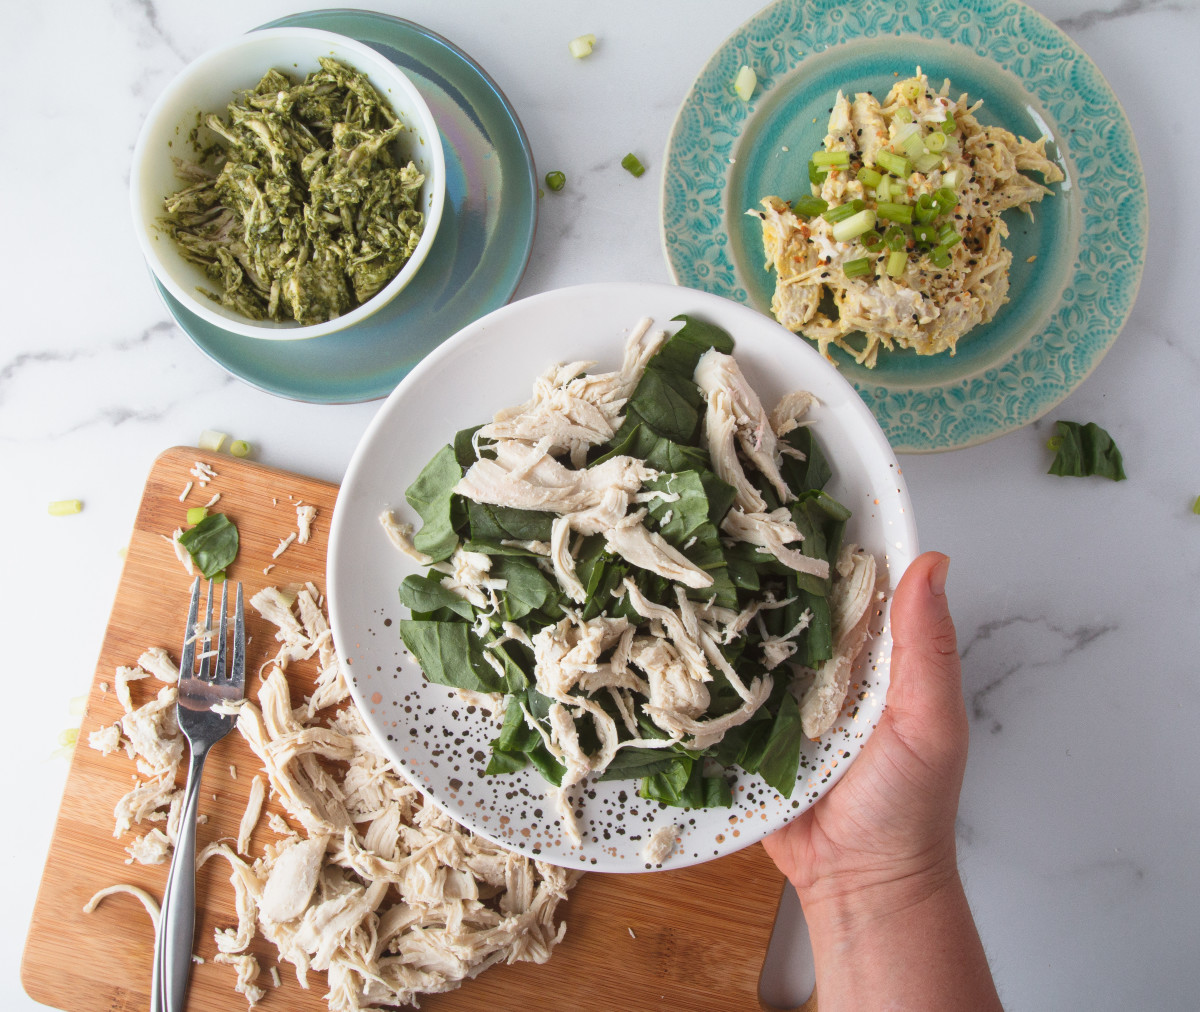 Shredded chicken can be used on top of greens for a simple salad.